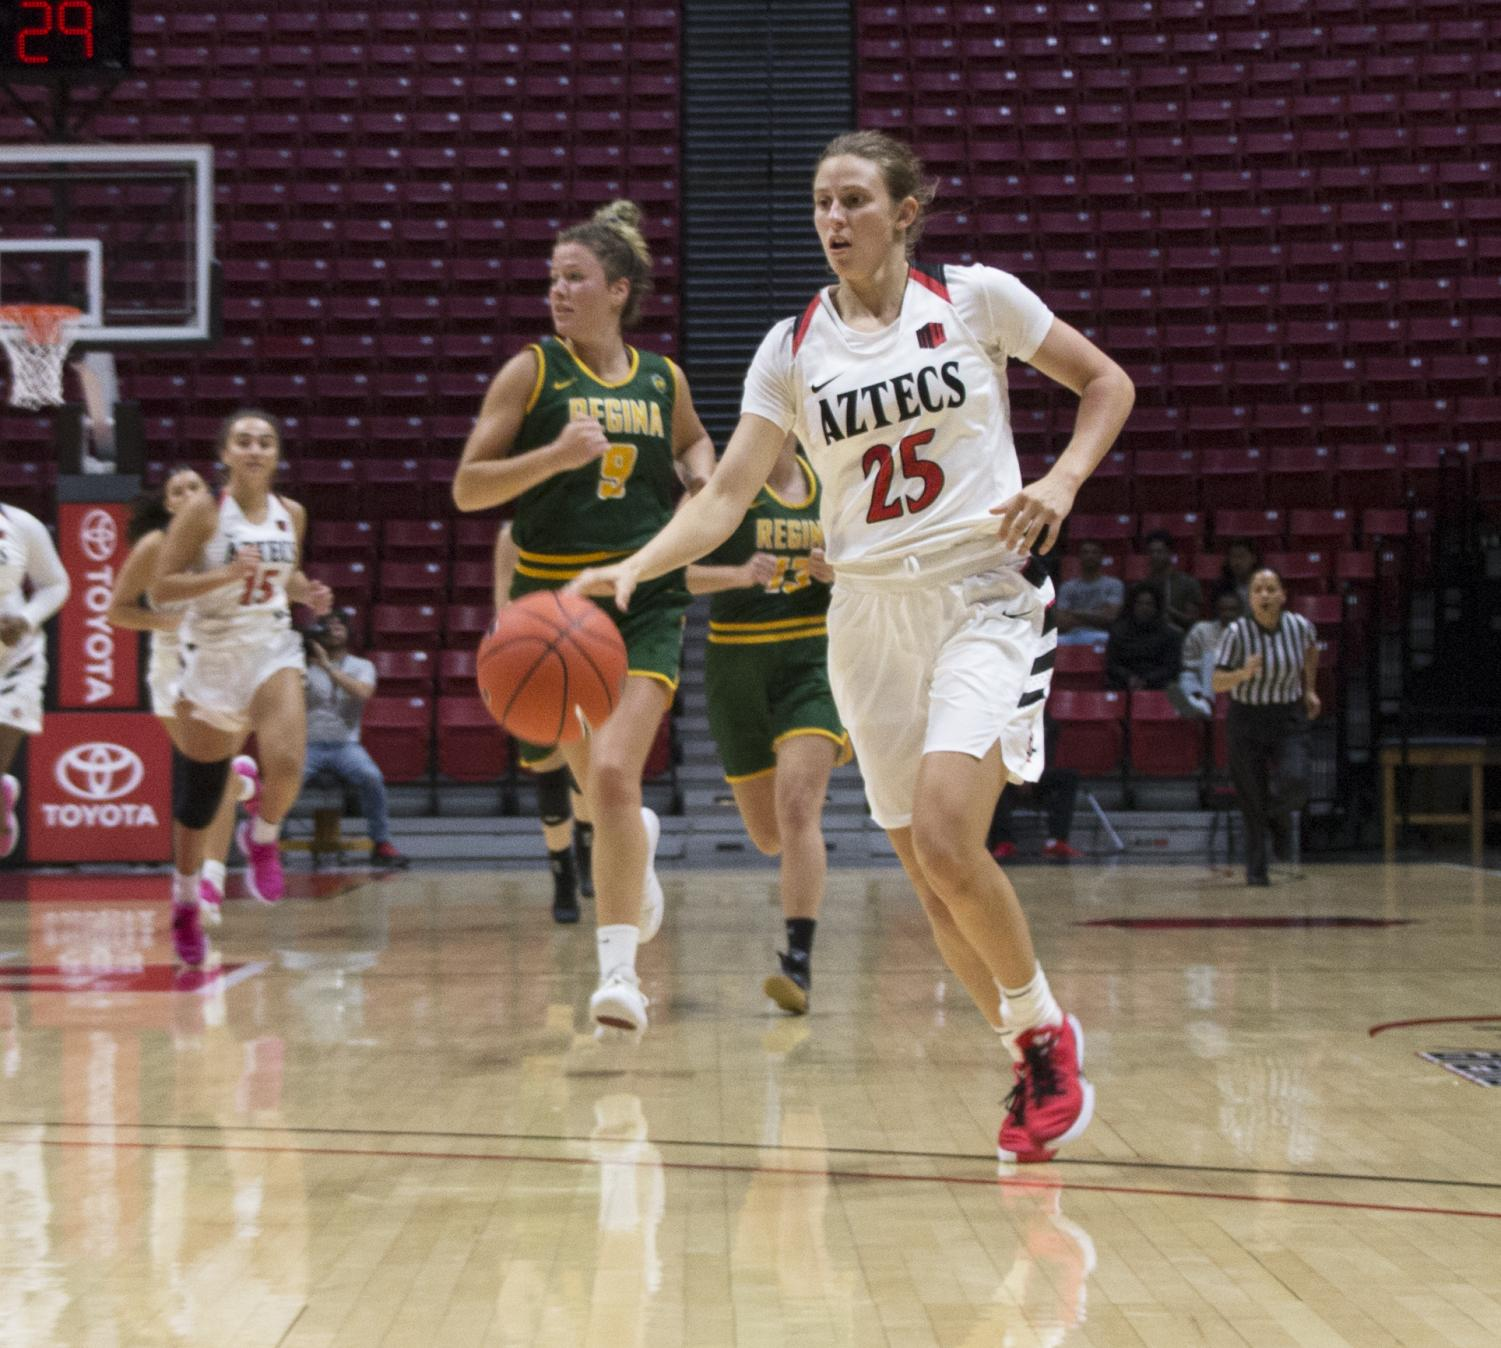 Aztecs senior guard Taylor Kalmer looks to drive into the paint during SDSU's exhibition against Regina on Oct. 27, 2019 at Viejas Arena.